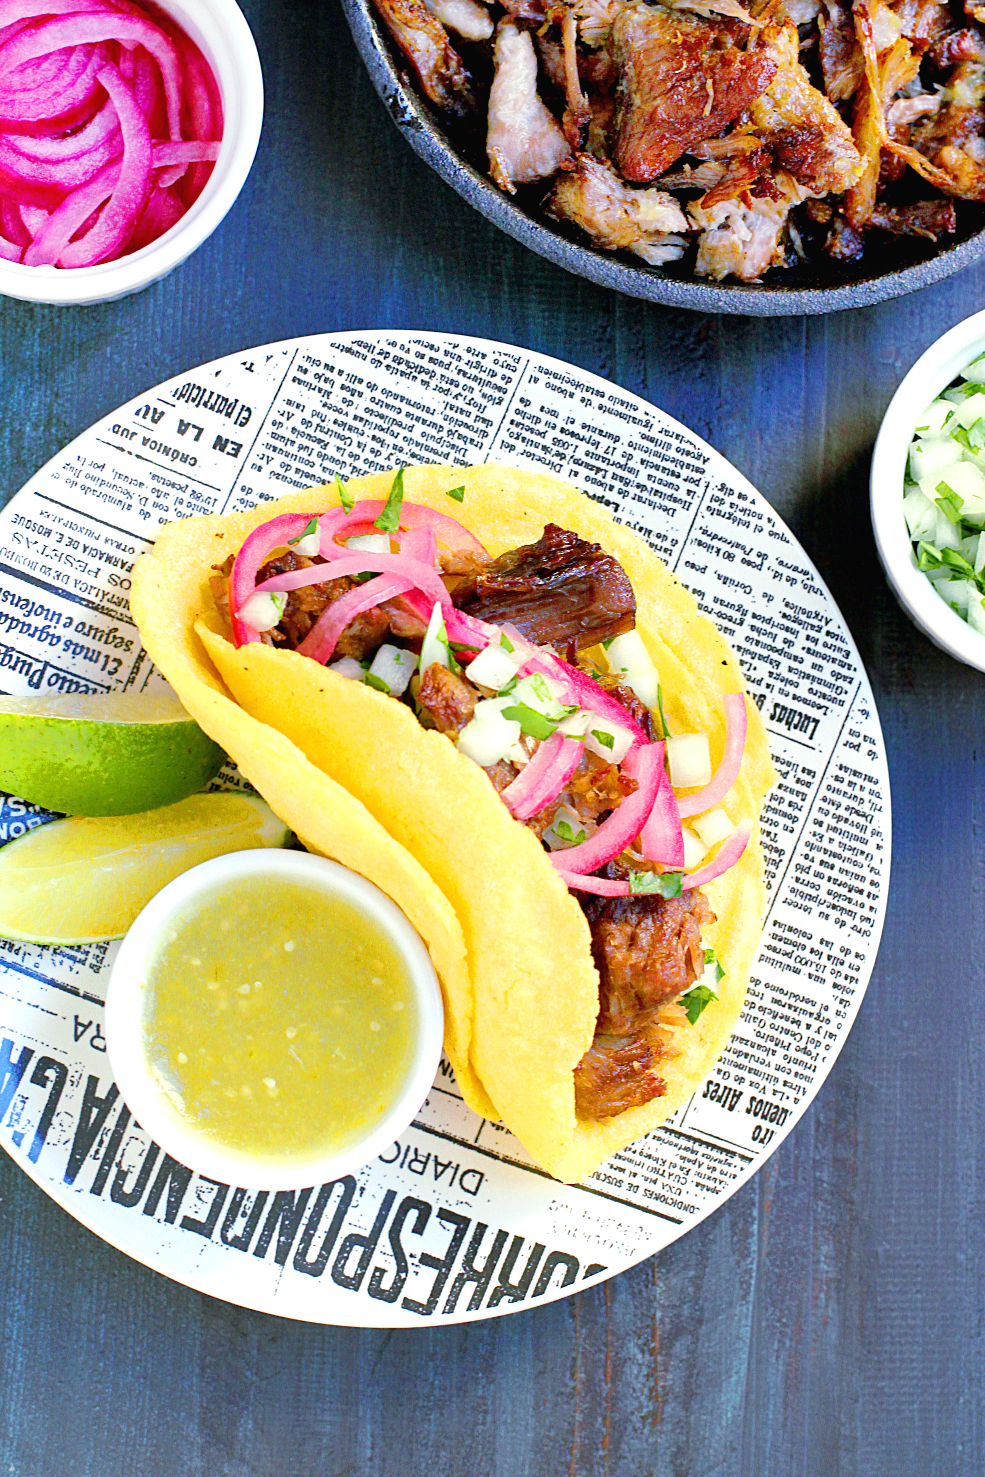 Image of slow-roasted carnitas with salsa verde taco.